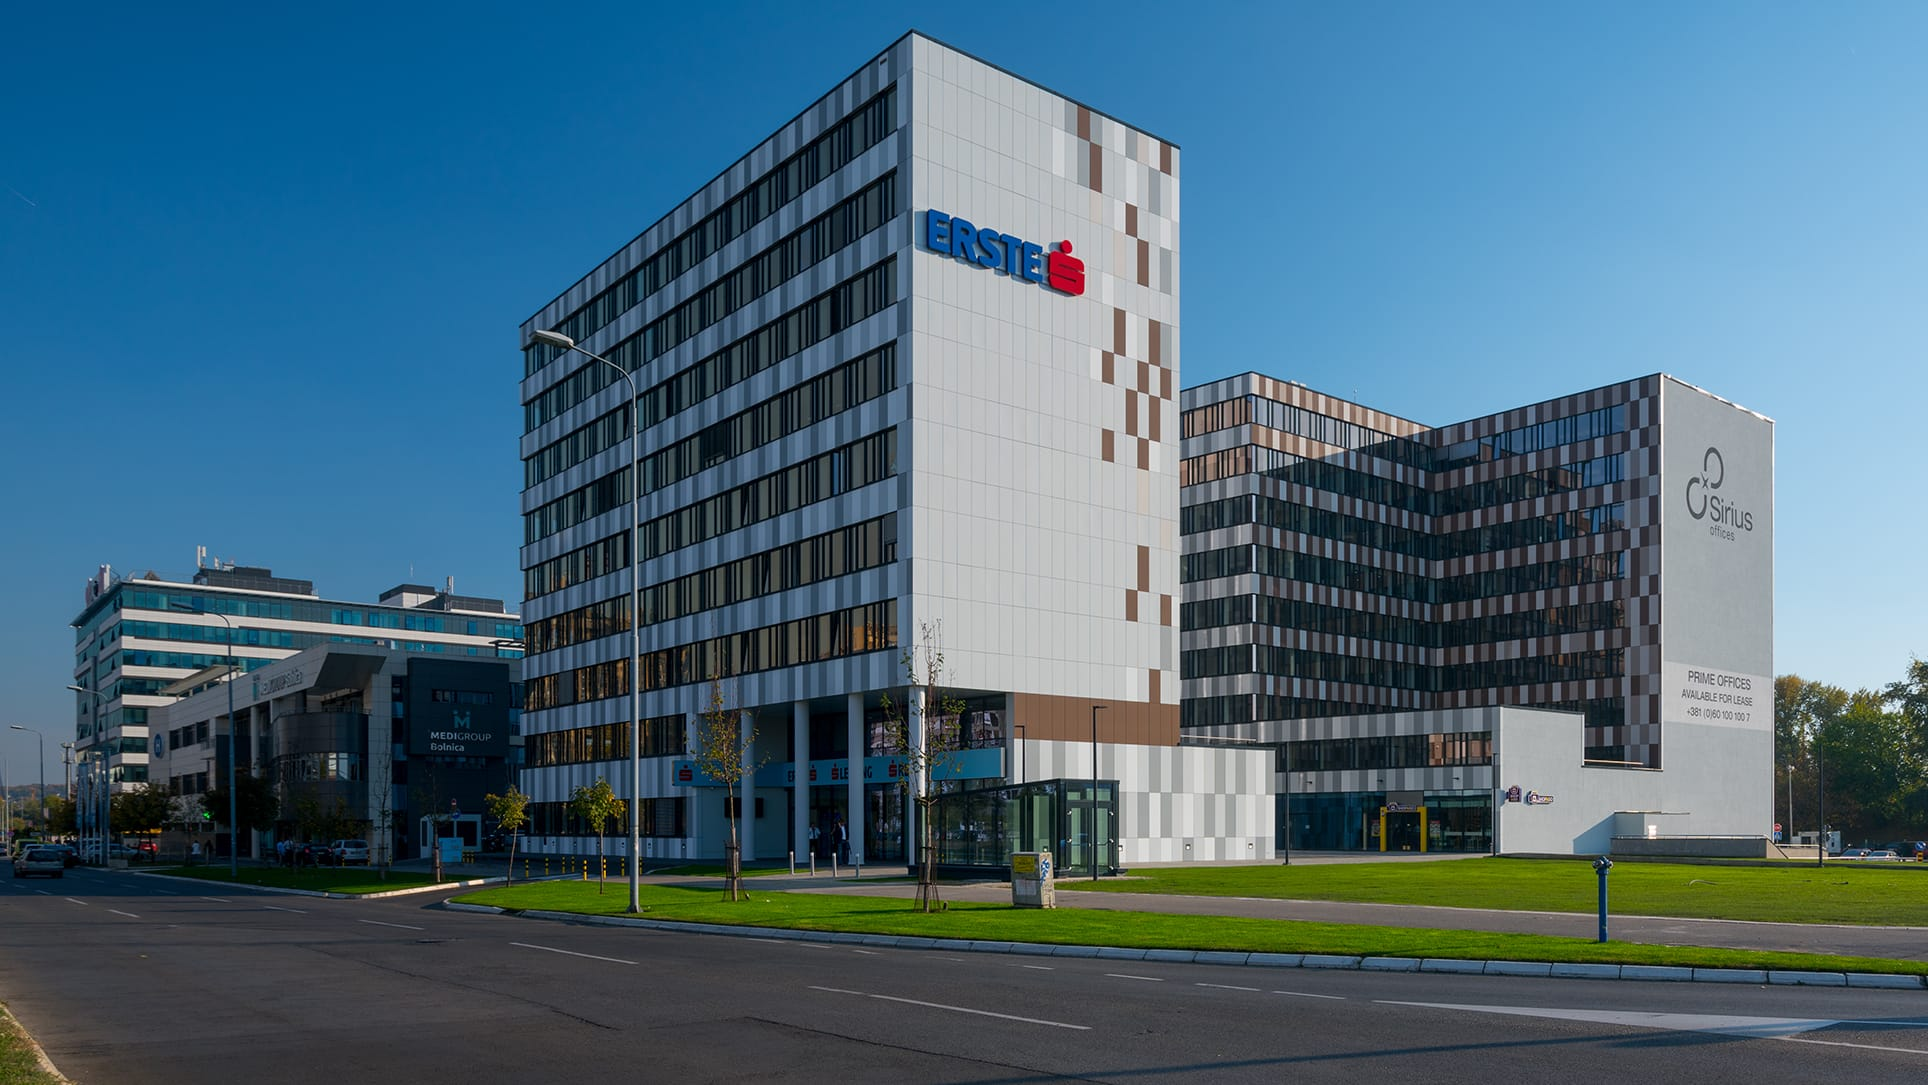 Sirius offices, Beograd - image 1.-sirius on https://digipsmak.rs